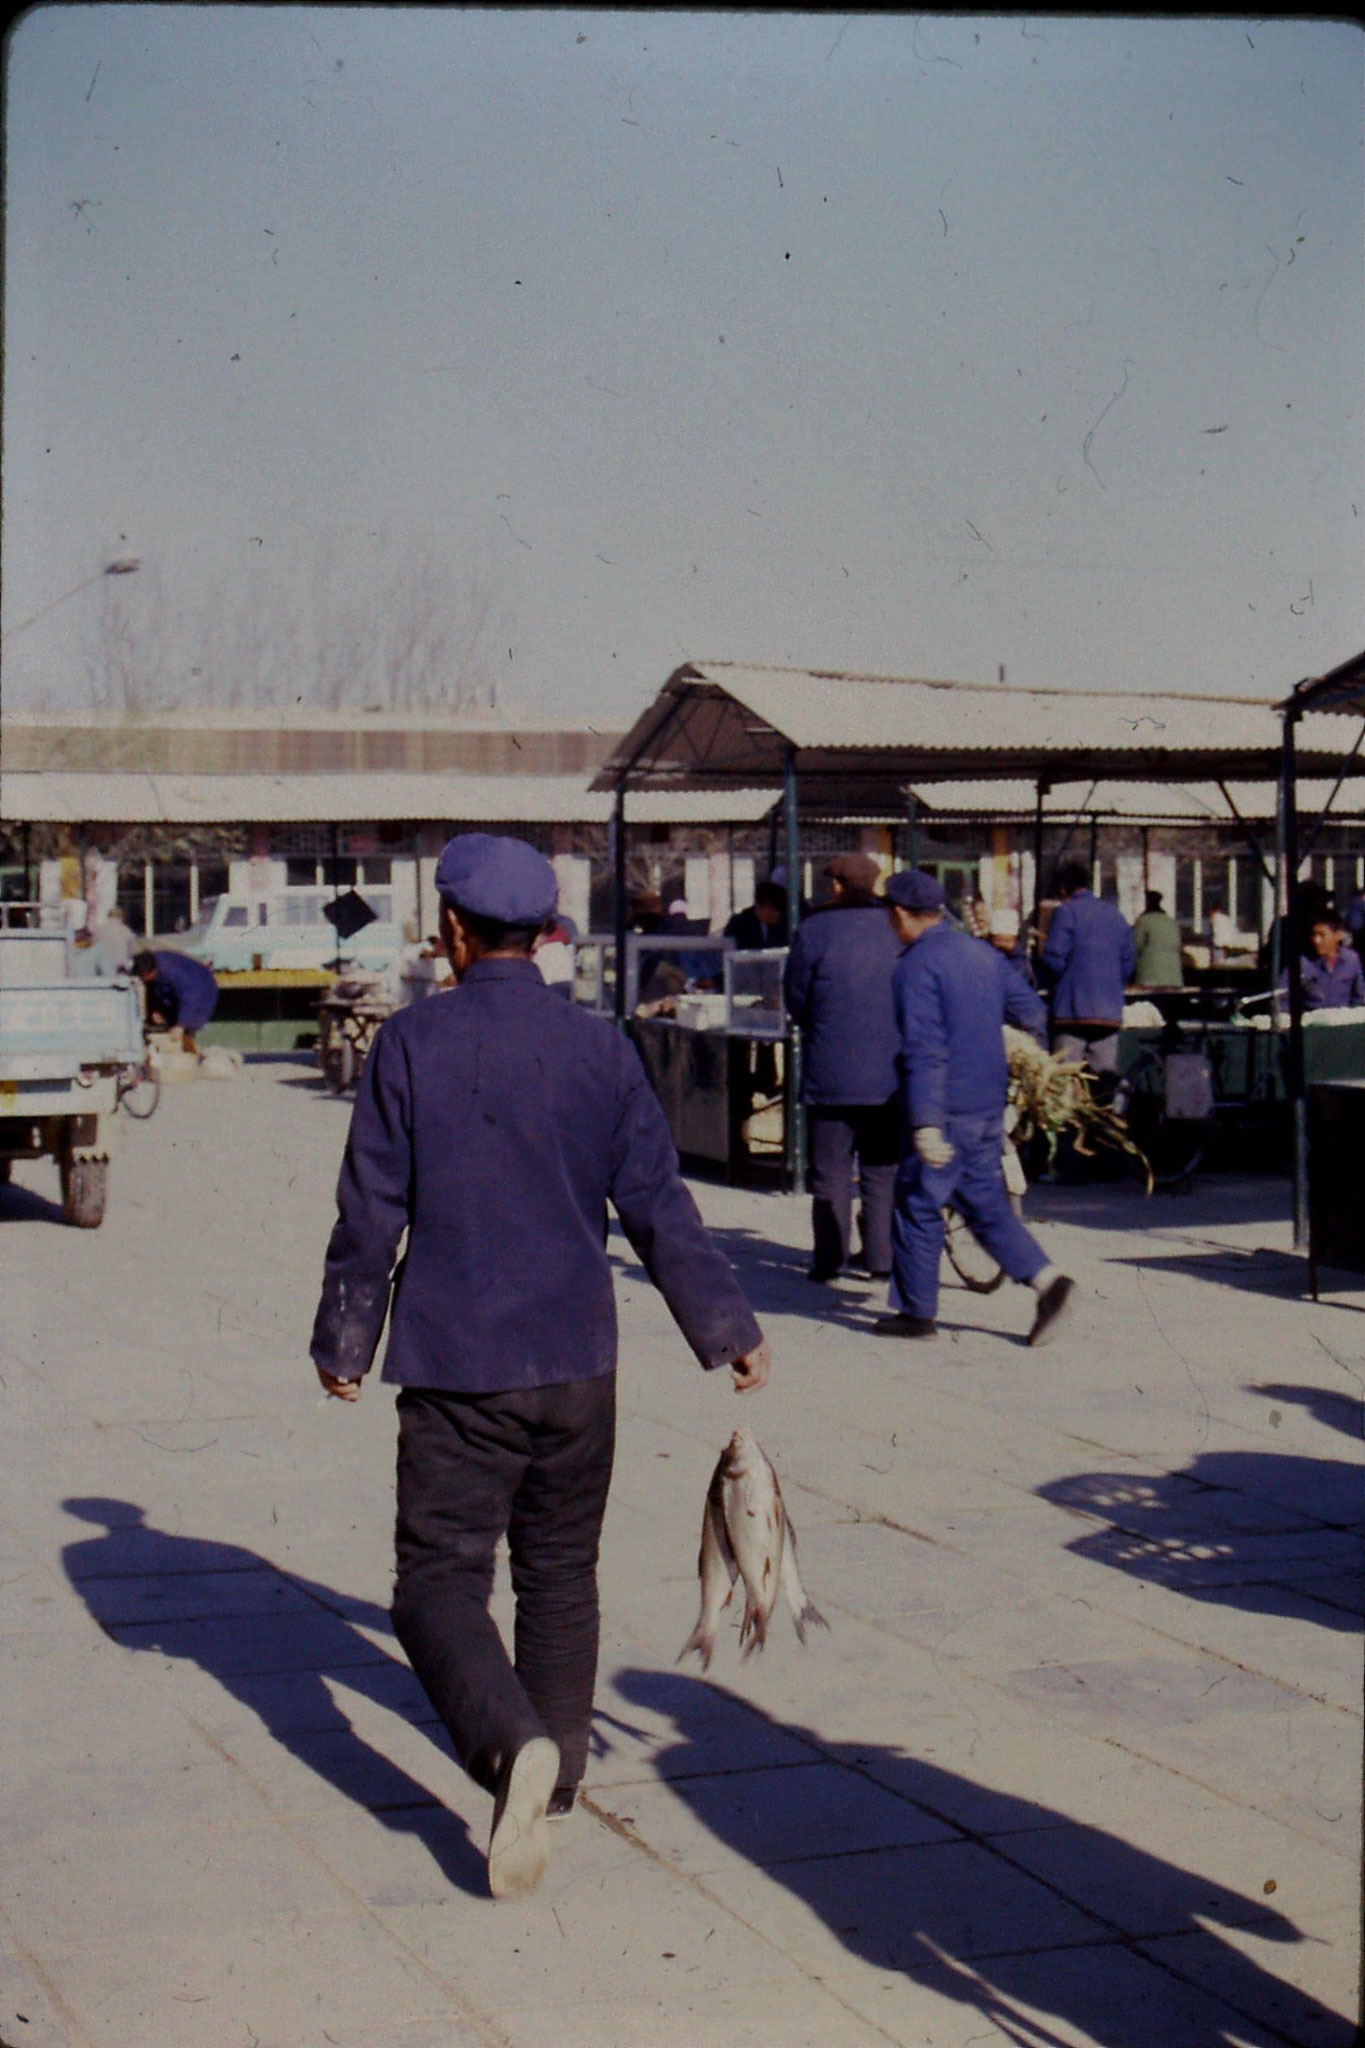 3/12/1988: 31: day trip to Shunyi